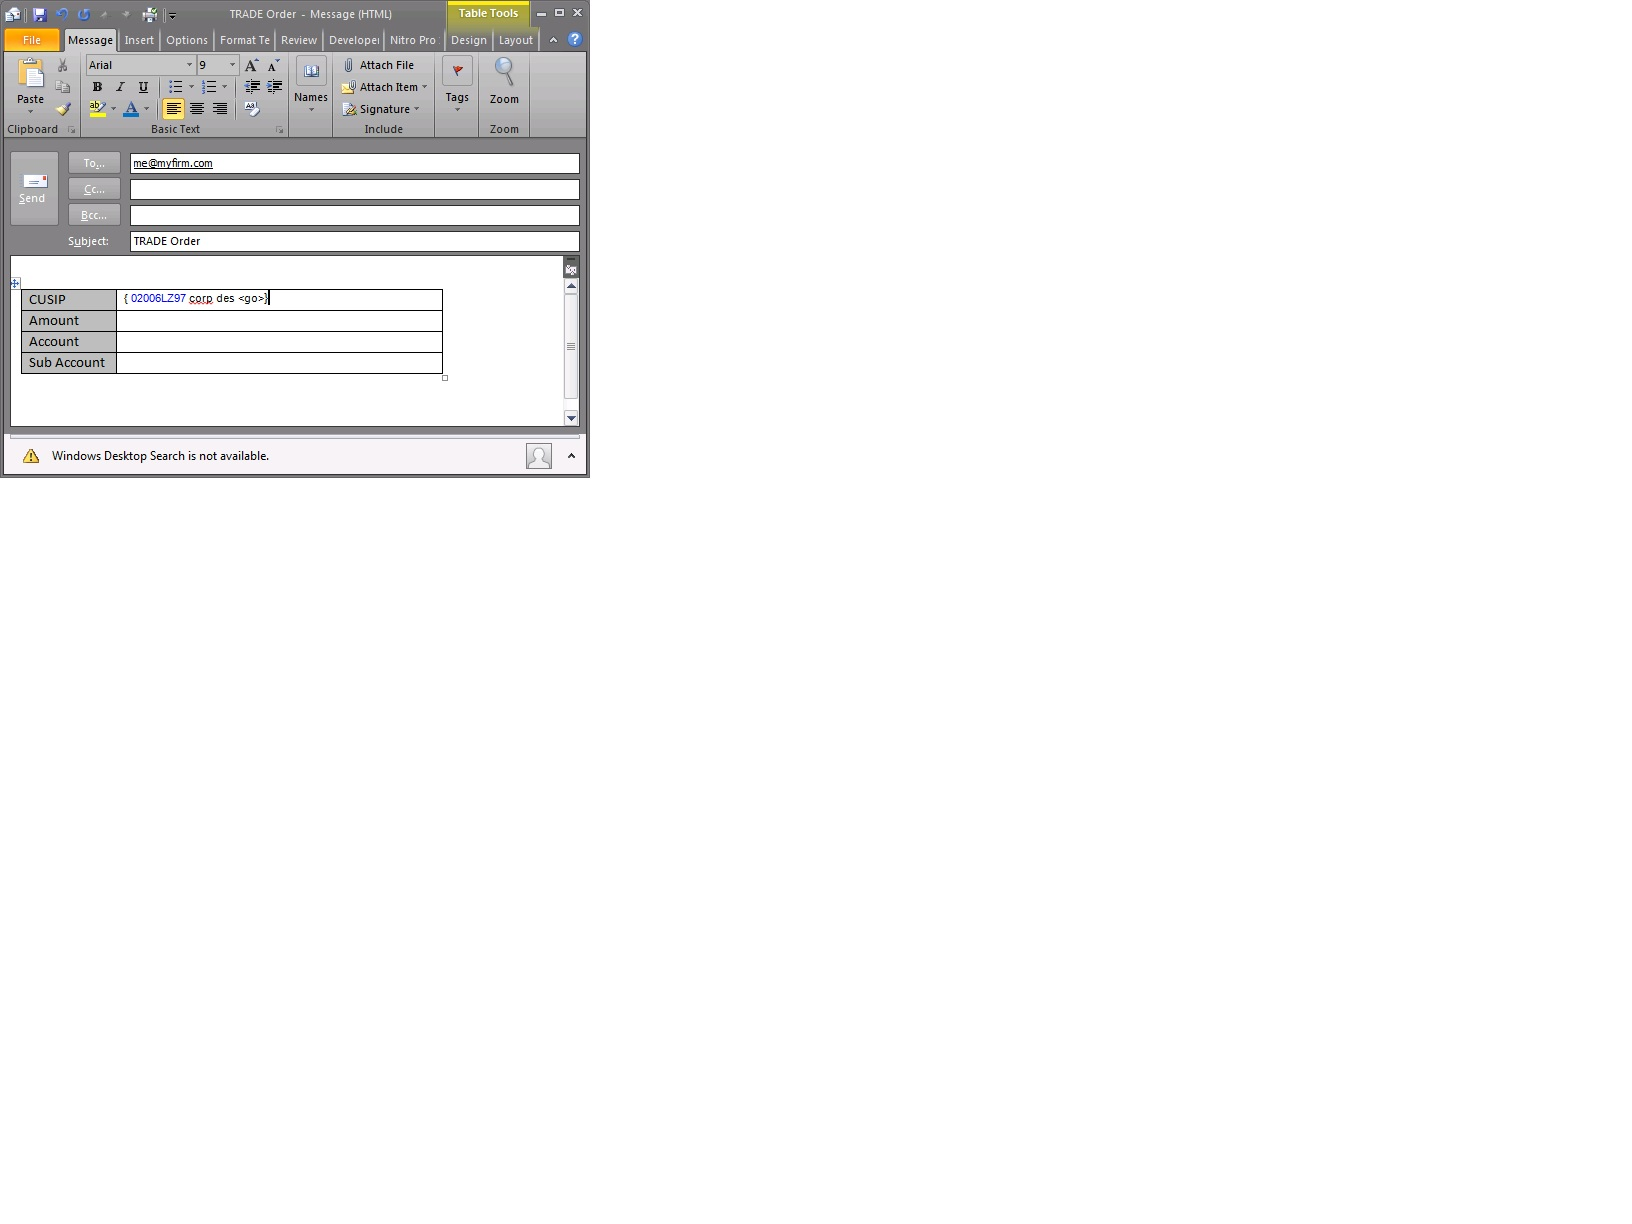 Excel hyperlinks - add custom and dynamic text to email body